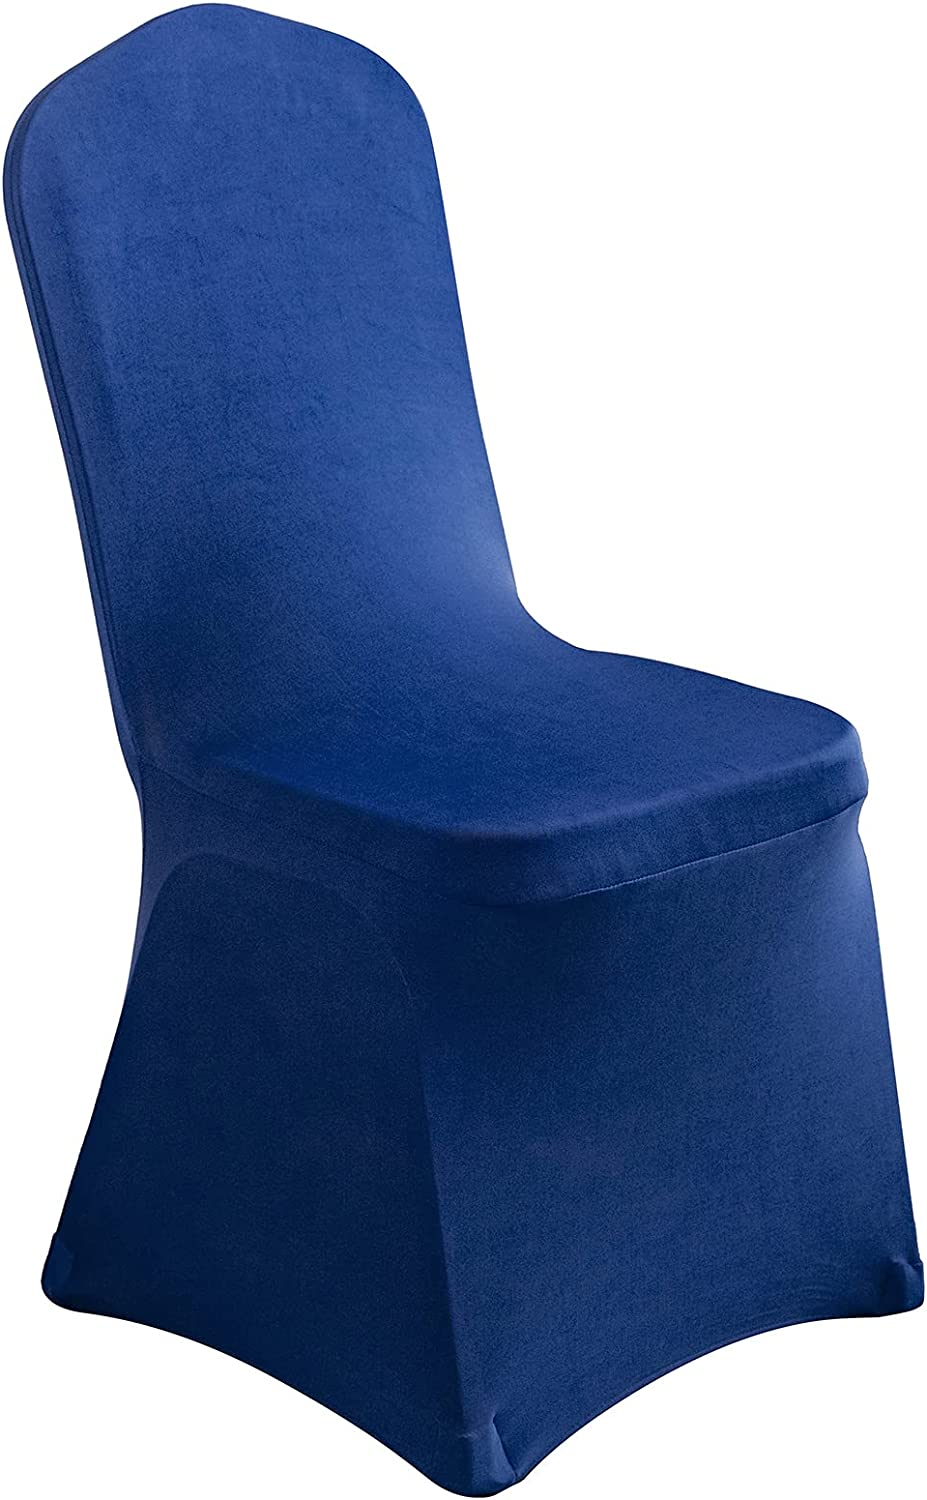 CUFZUZ Spandex Dining Max 68% OFF Room Chair Popular product Living Covers Univer - for